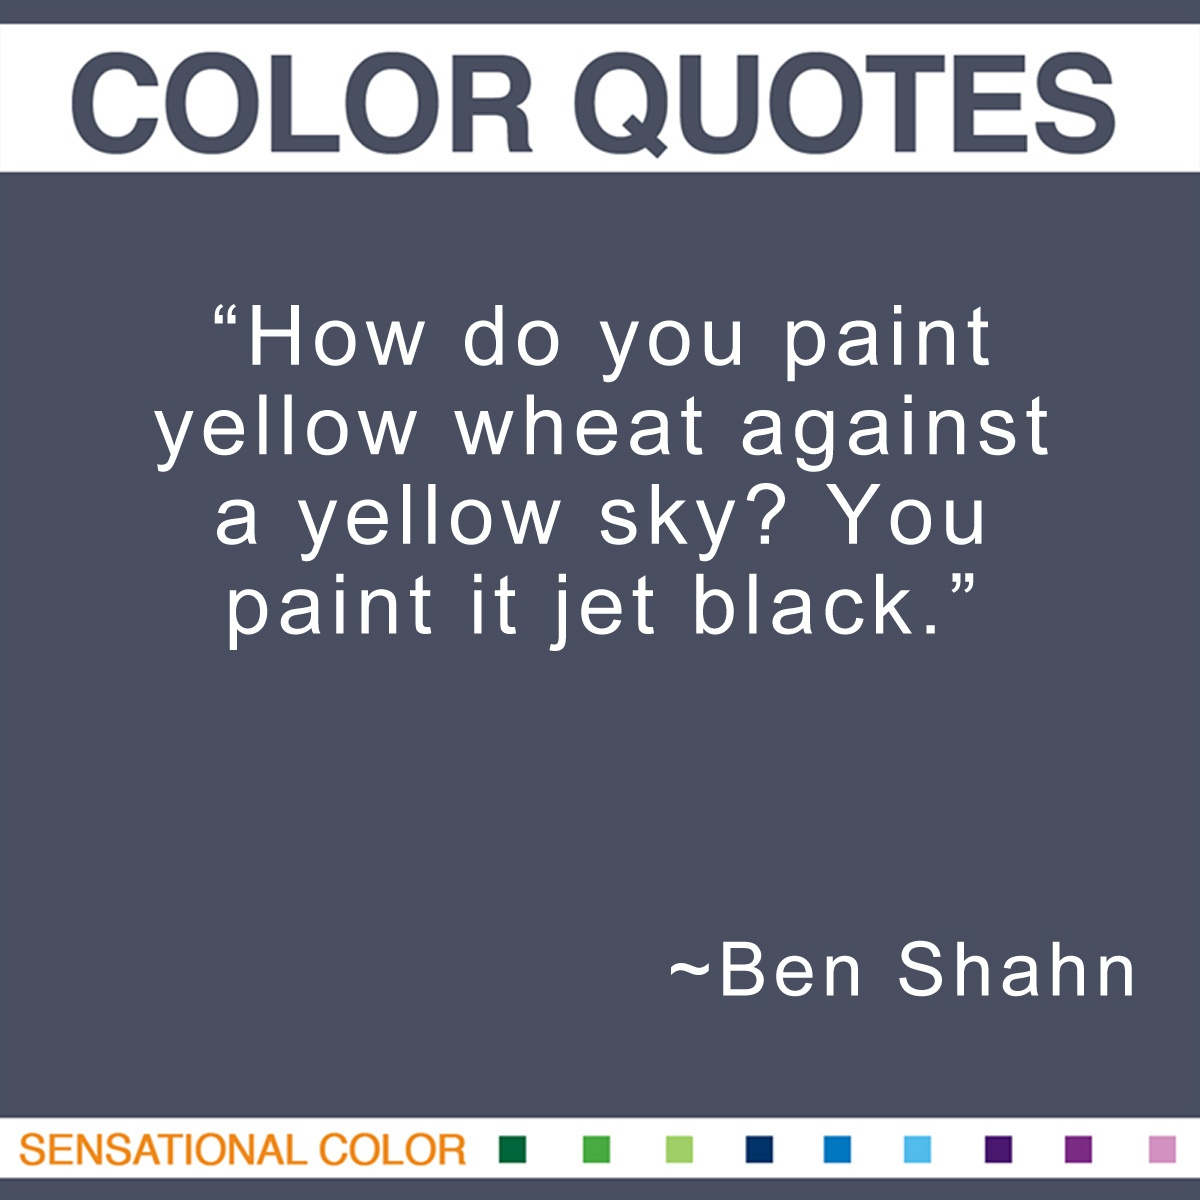 """How do you paint yellow wheat against a yellow sky? You paint it jet black."" - Ben Shahn"